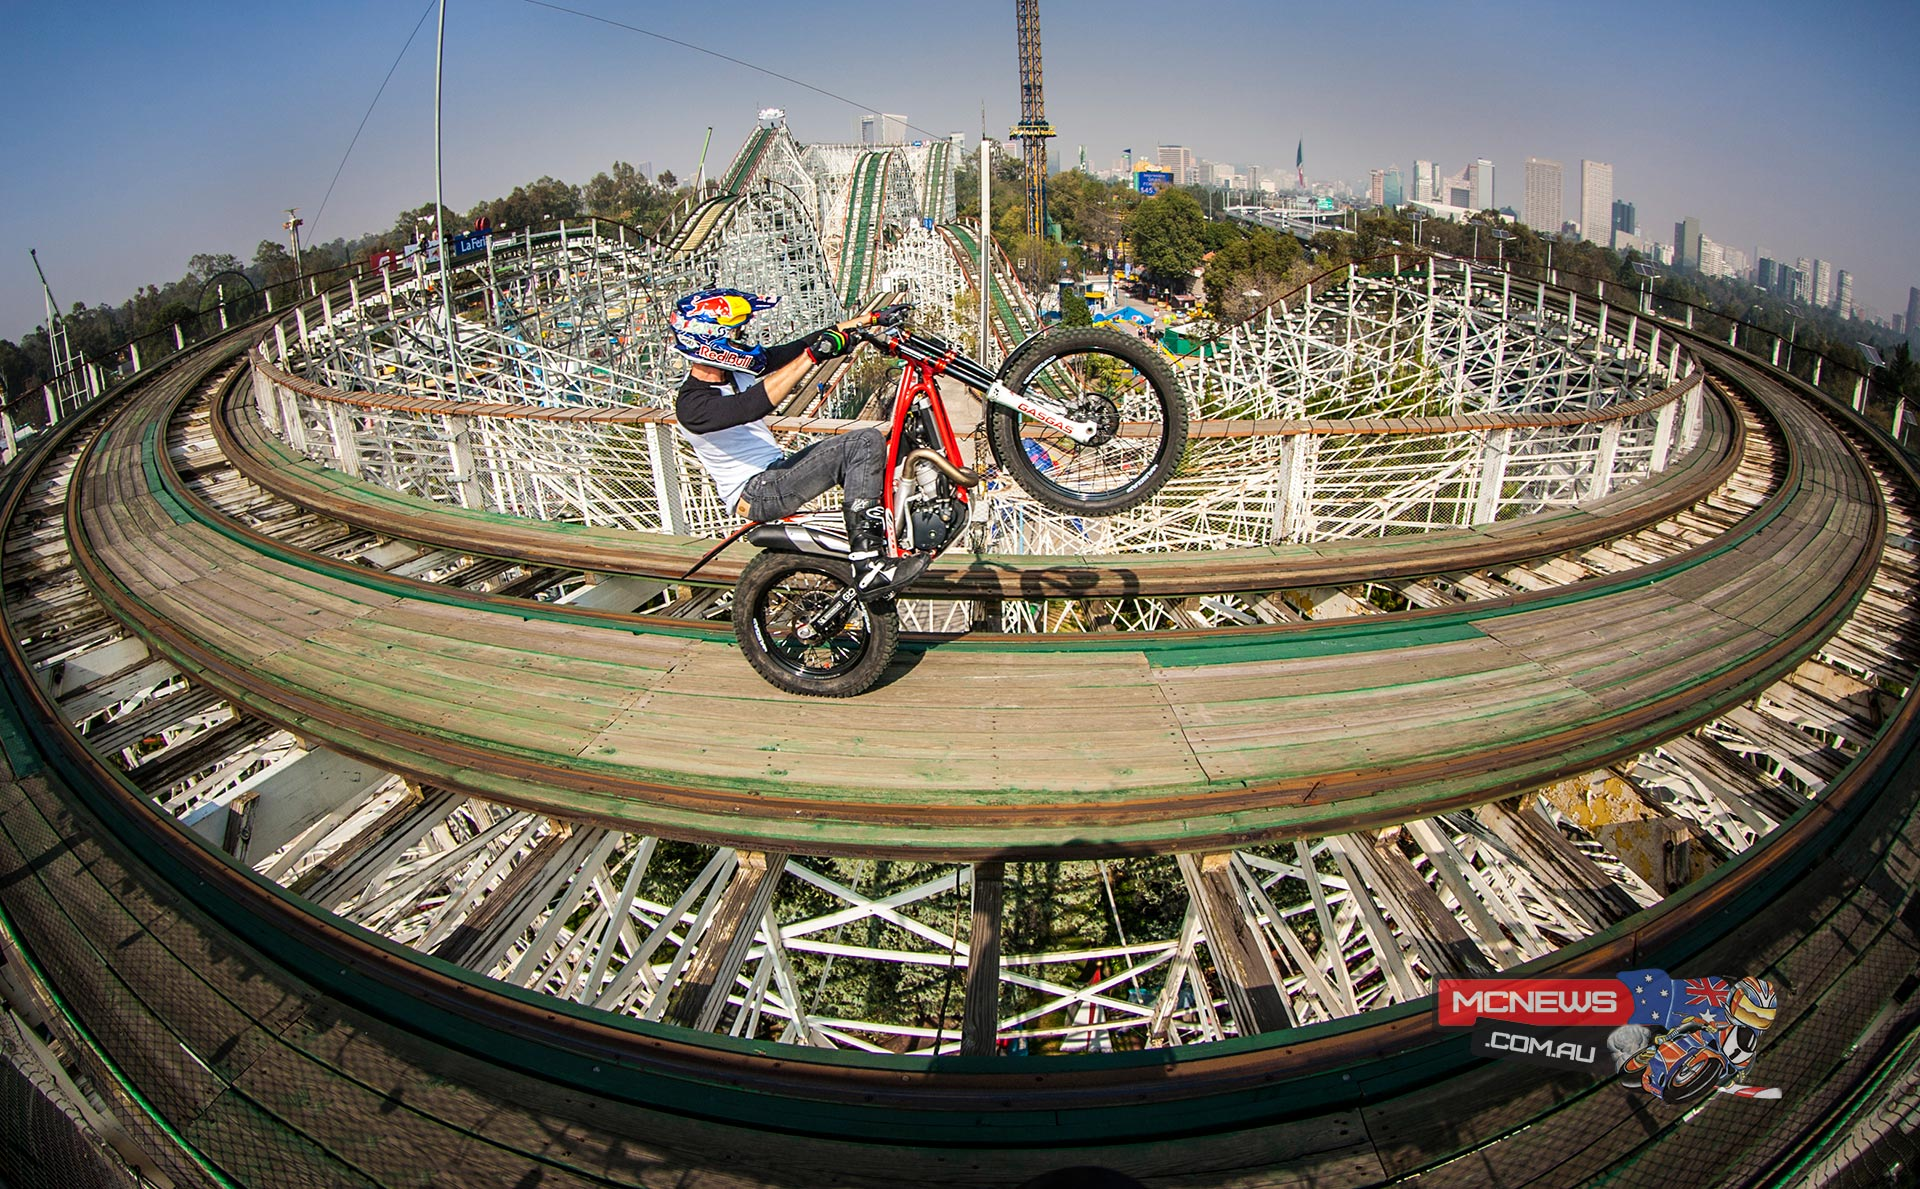 Julien Dupont rode a roller coaster on a trial bike: La Feria de Chapultepec, Mexico City